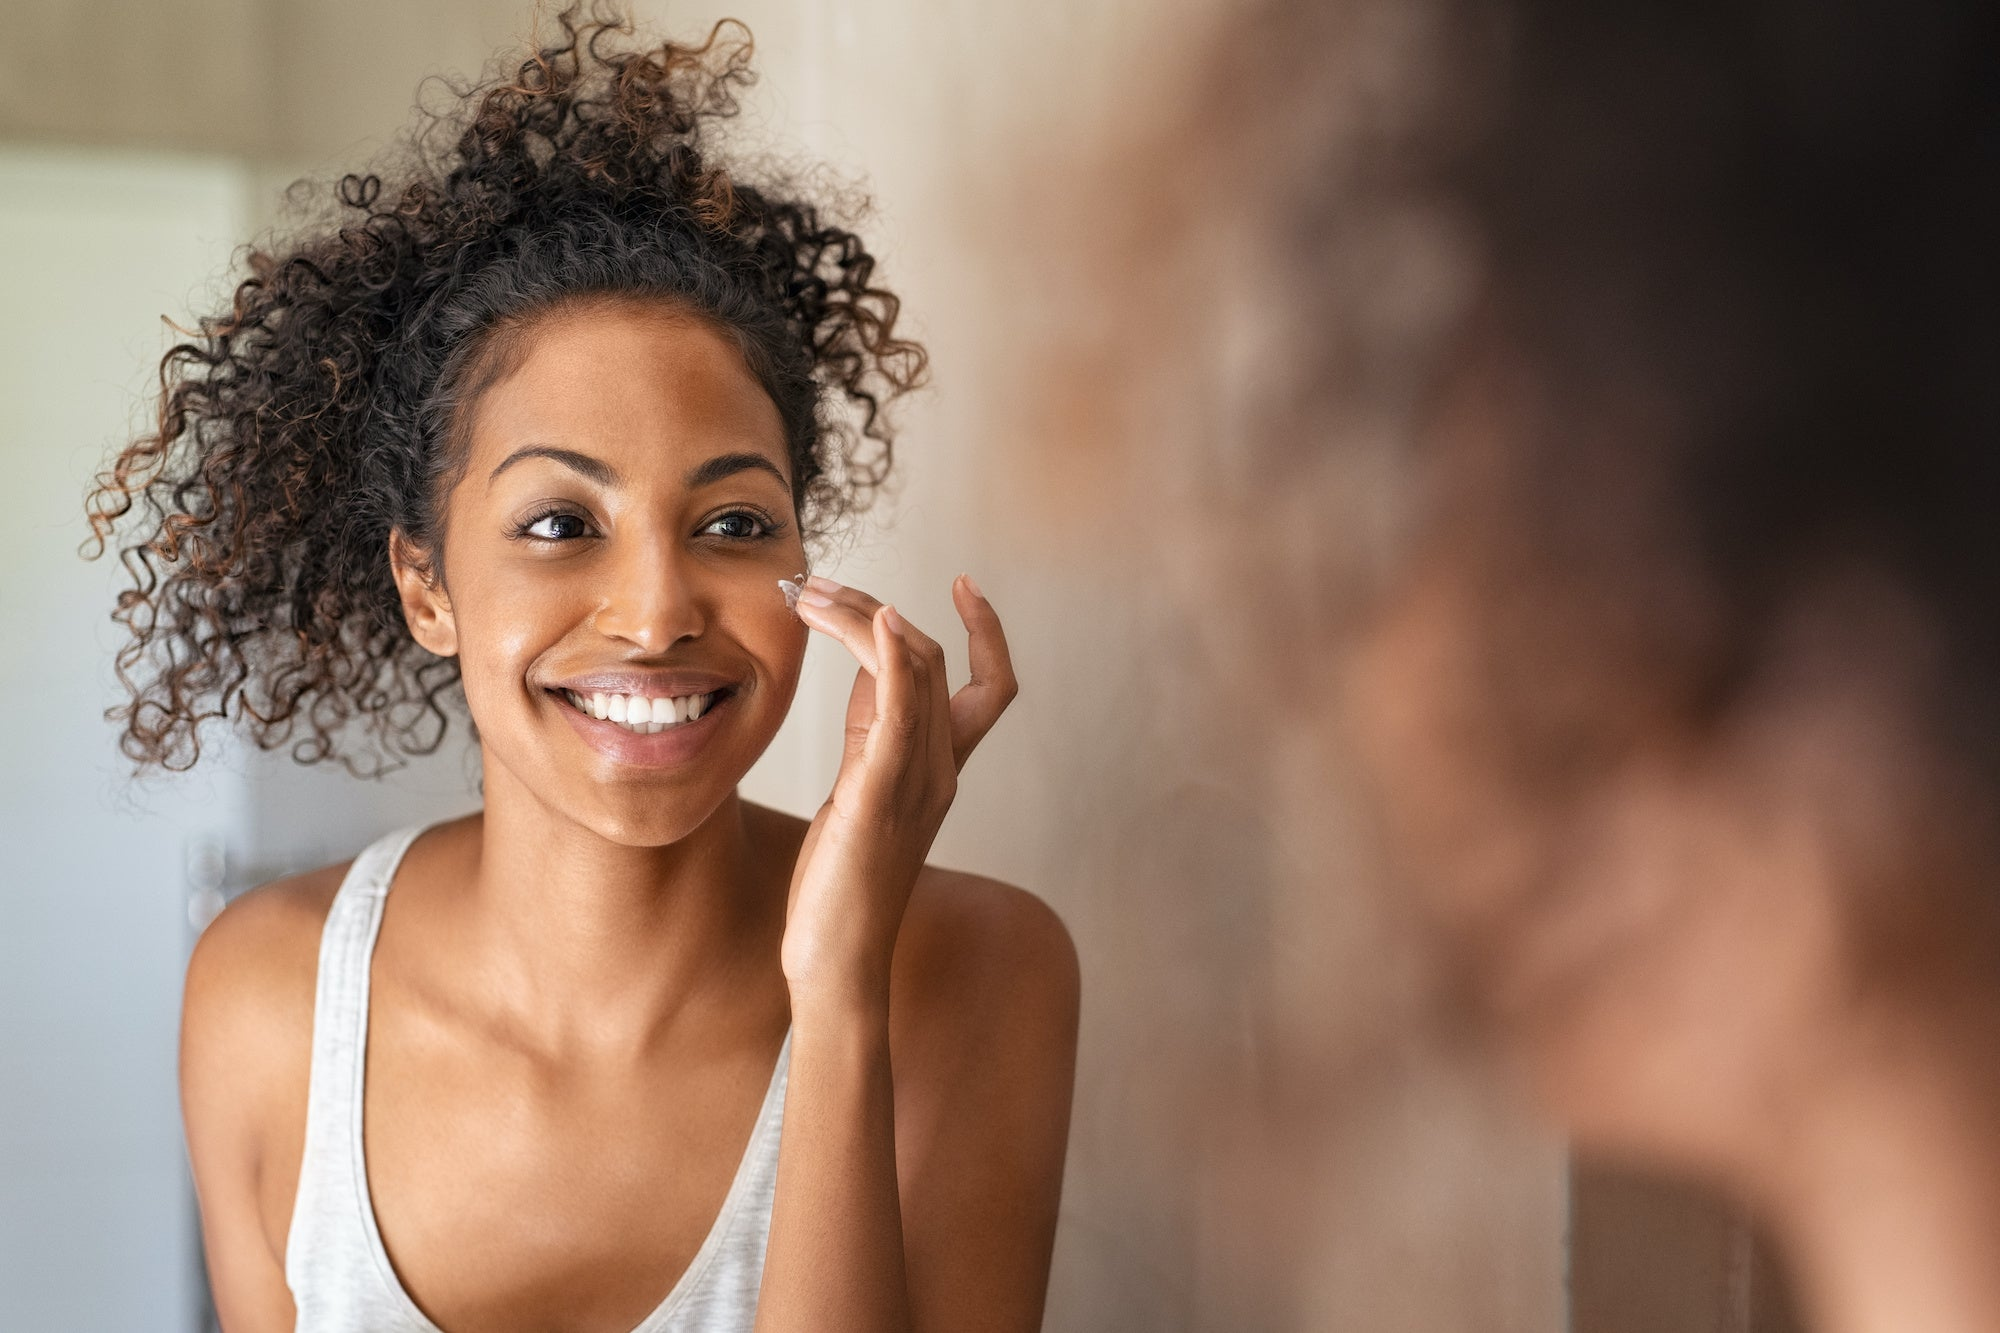 7 Skincare Tips Most Women Don't Know About